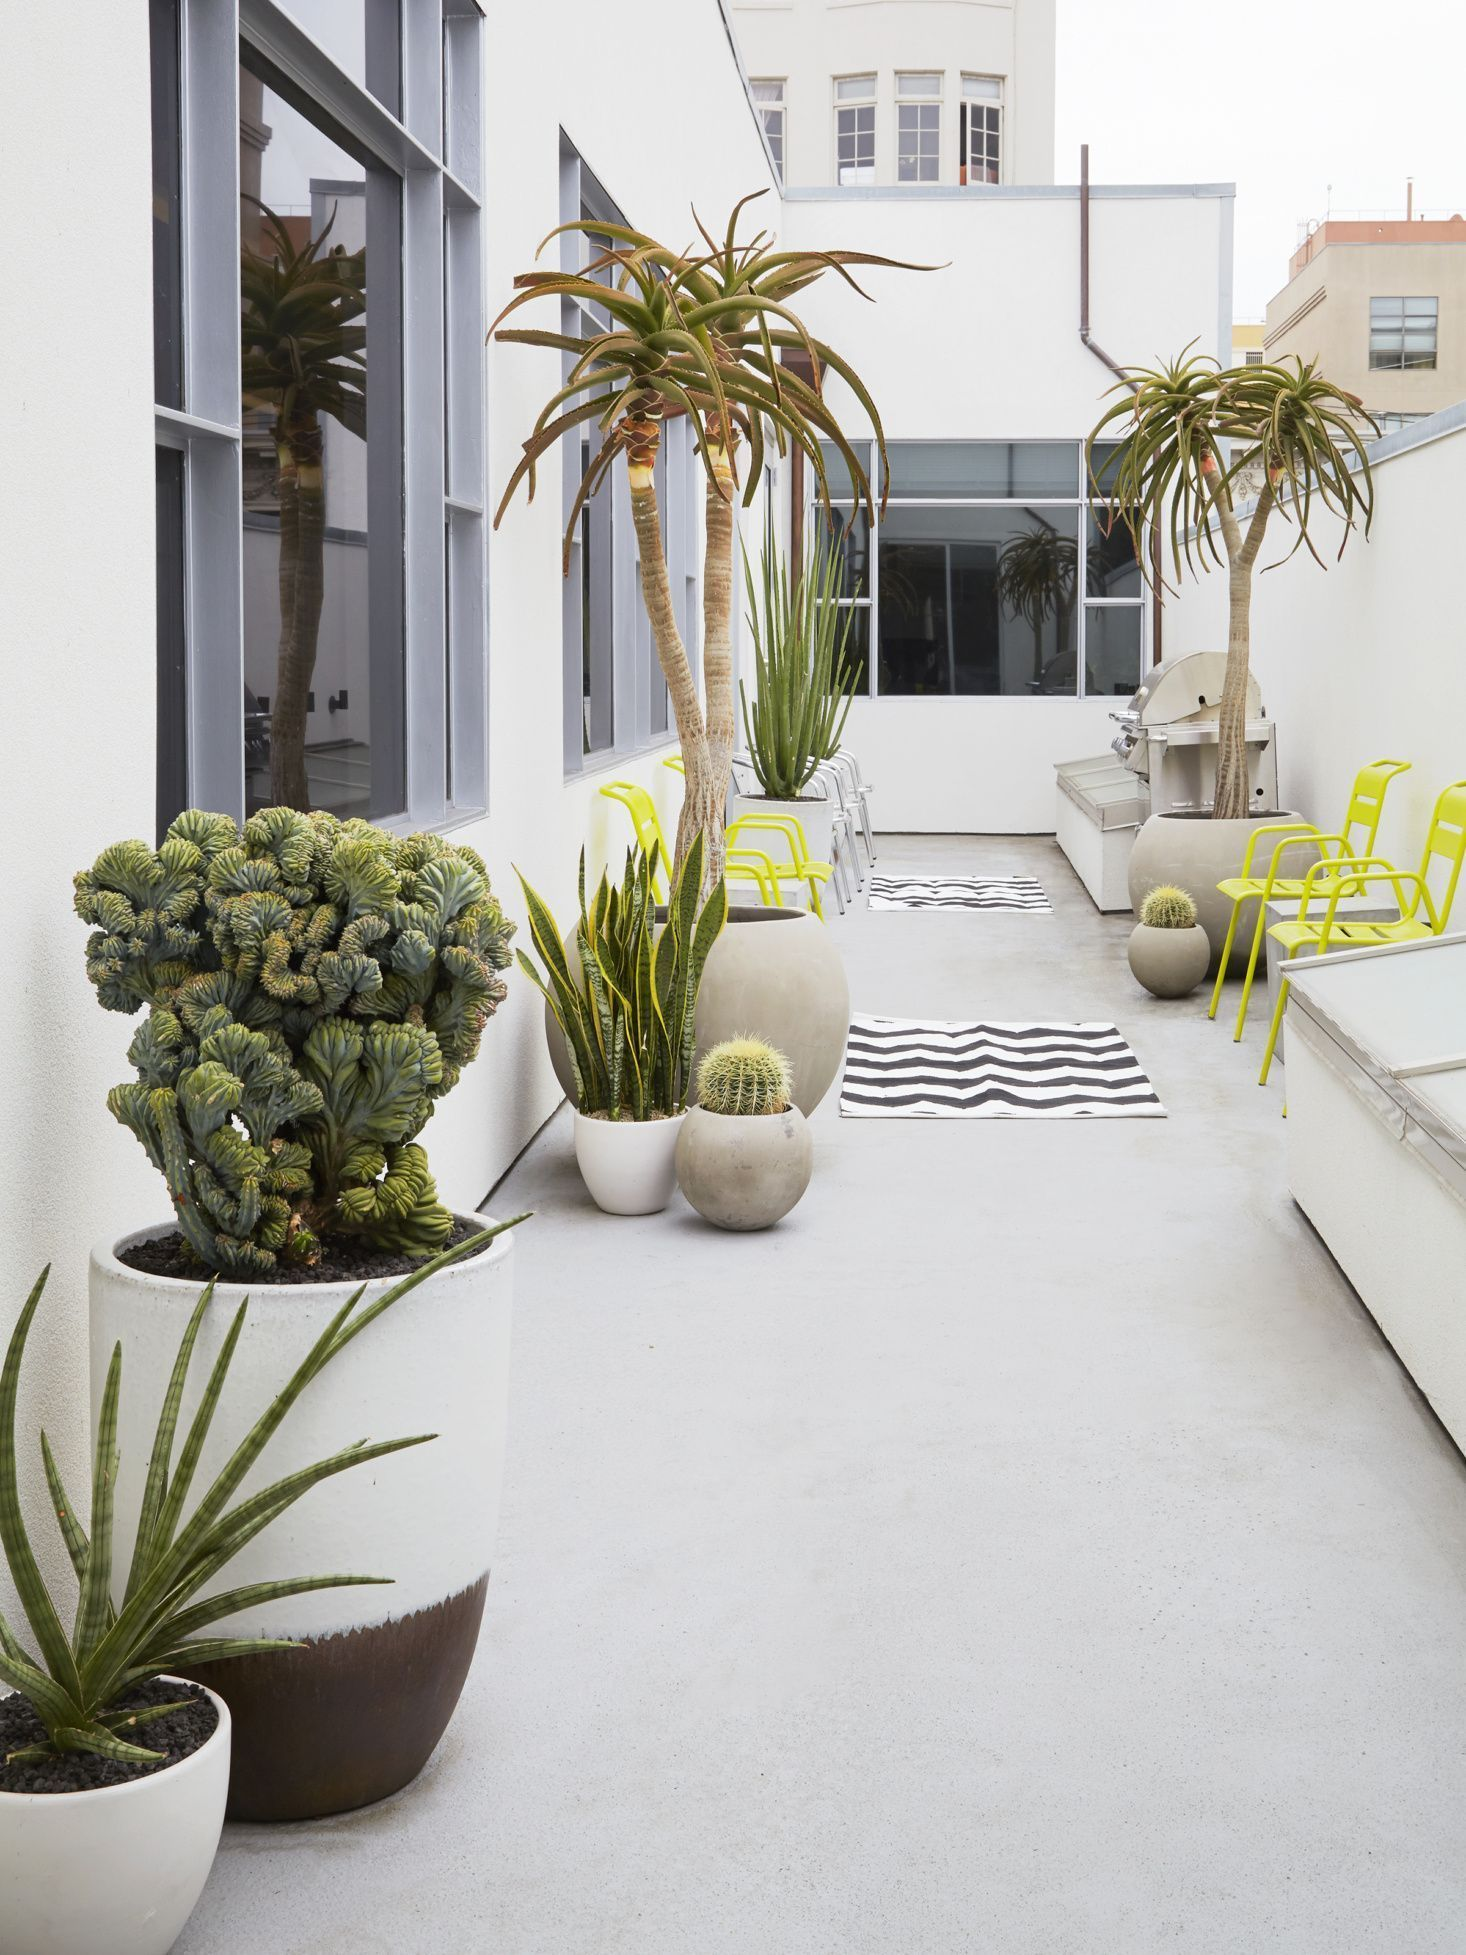 Low-Water Landscapes: 8 Ideas for Dry Gardens, from Designer Daniel Nolan #narrowbalcony A crested Myrtillocactus (M. geometrizans cristata) in the foreground shares a narrow balcony with potted Furcraea macdougalii and Aloe barberae. #gardenista #gardenideas #garden #urbangarden #narrowbalcony Low-Water Landscapes: 8 Ideas for Dry Gardens, from Designer Daniel Nolan #narrowbalcony A crested Myrtillocactus (M. geometrizans cristata) in the foreground shares a narrow balcony with potted Furcraea #narrowbalcony